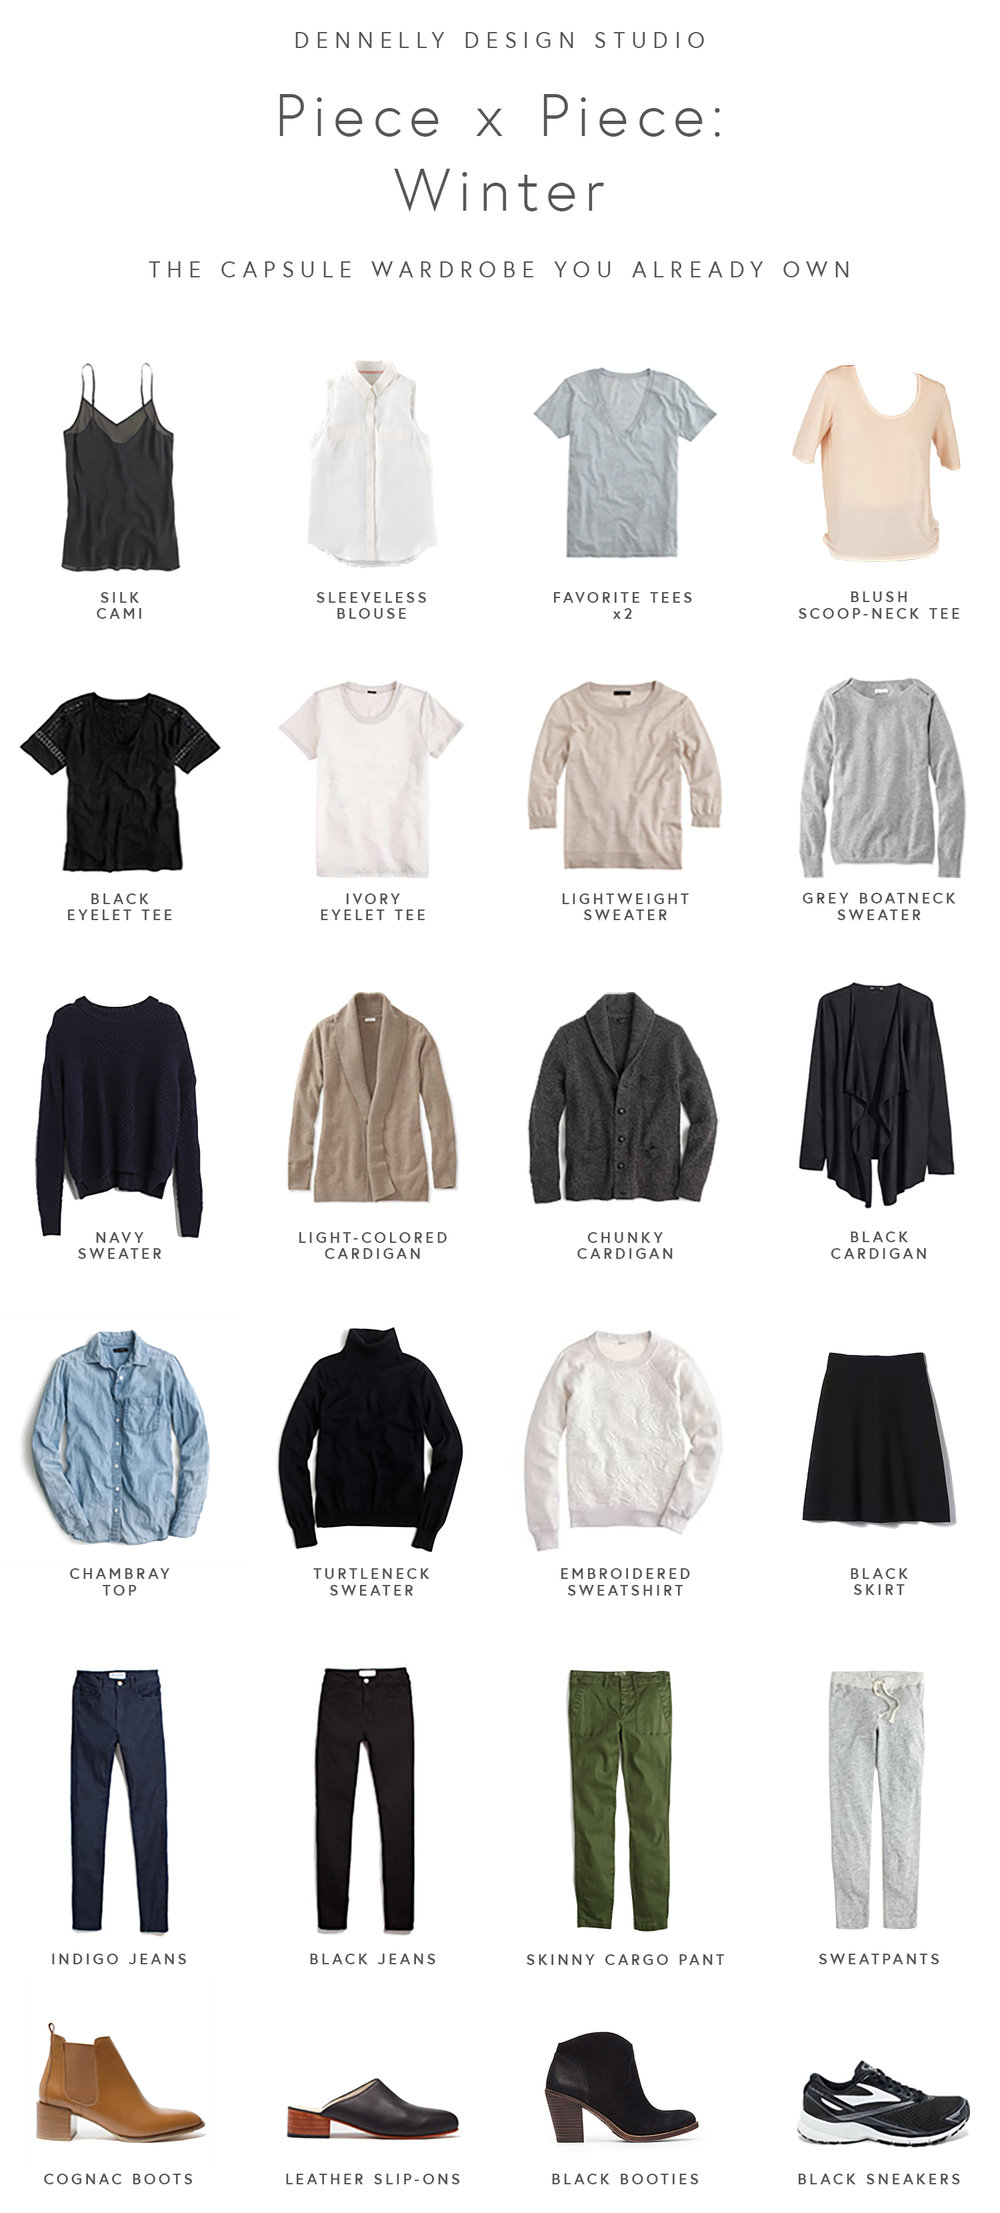 DennellyDesign_PiecexPiece_Winter_CapsuleWardrobe_01.jpg